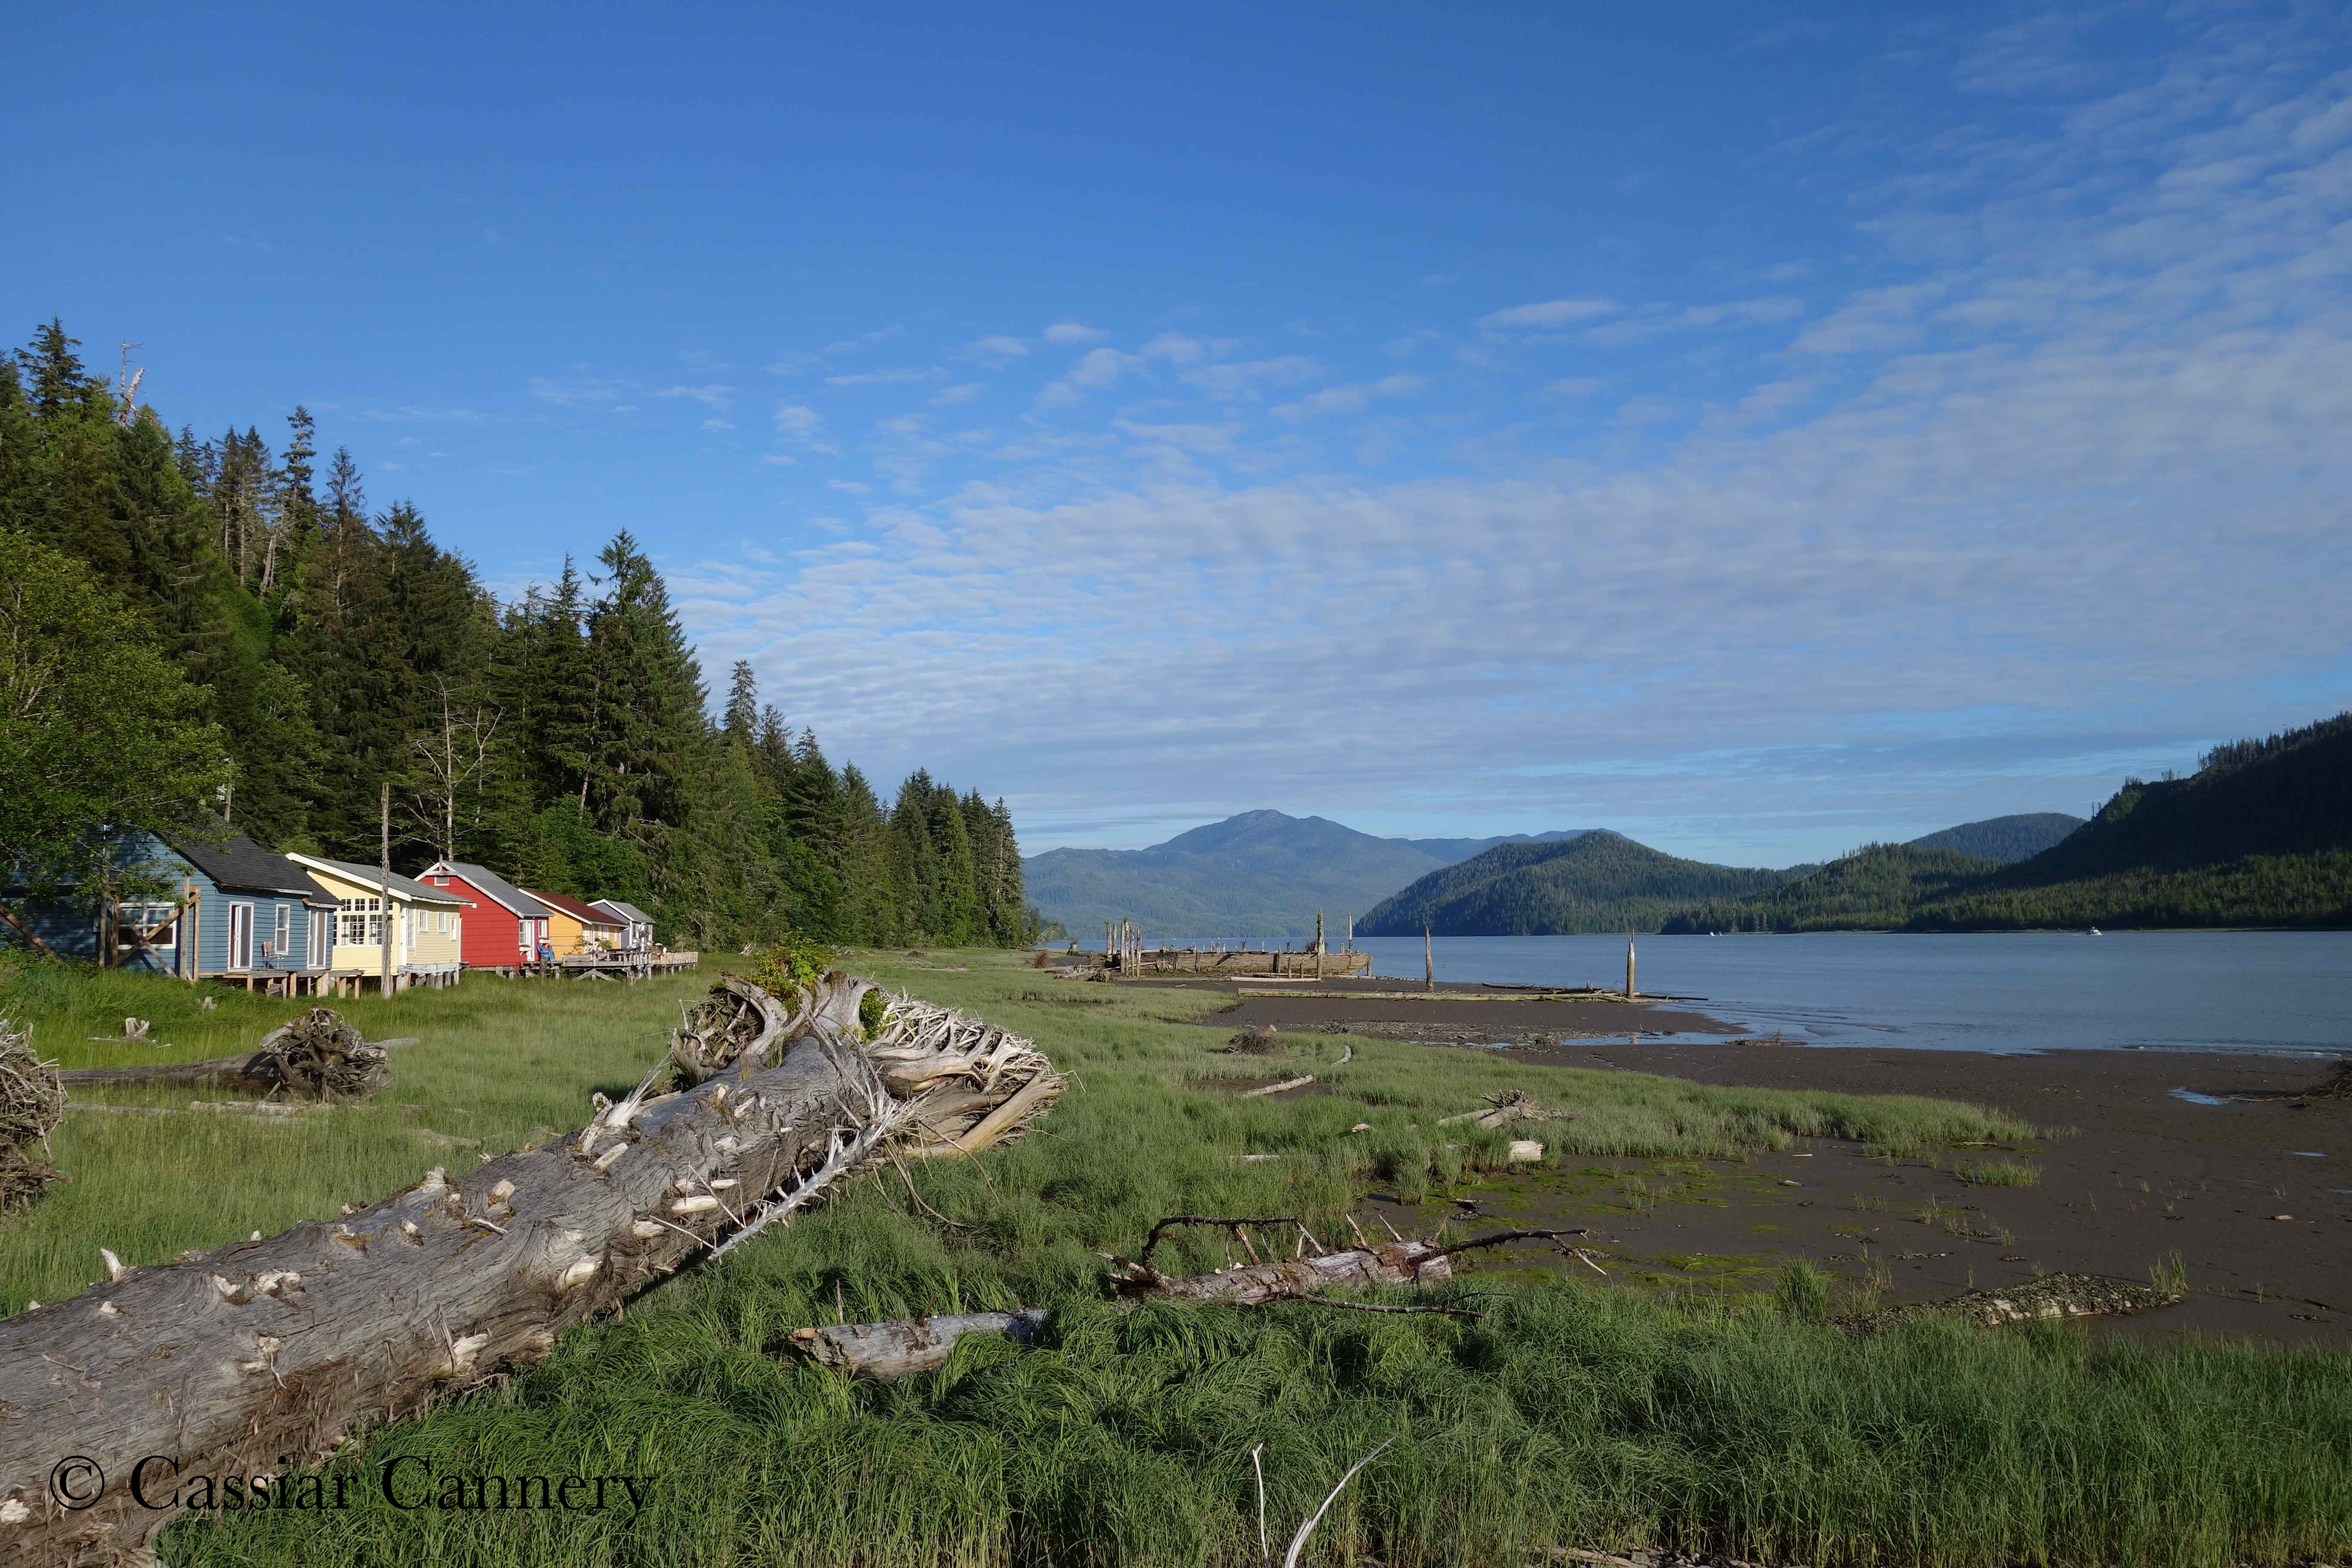 Cassiar Cannery - Halibut House- view down to the Skeena.jpg